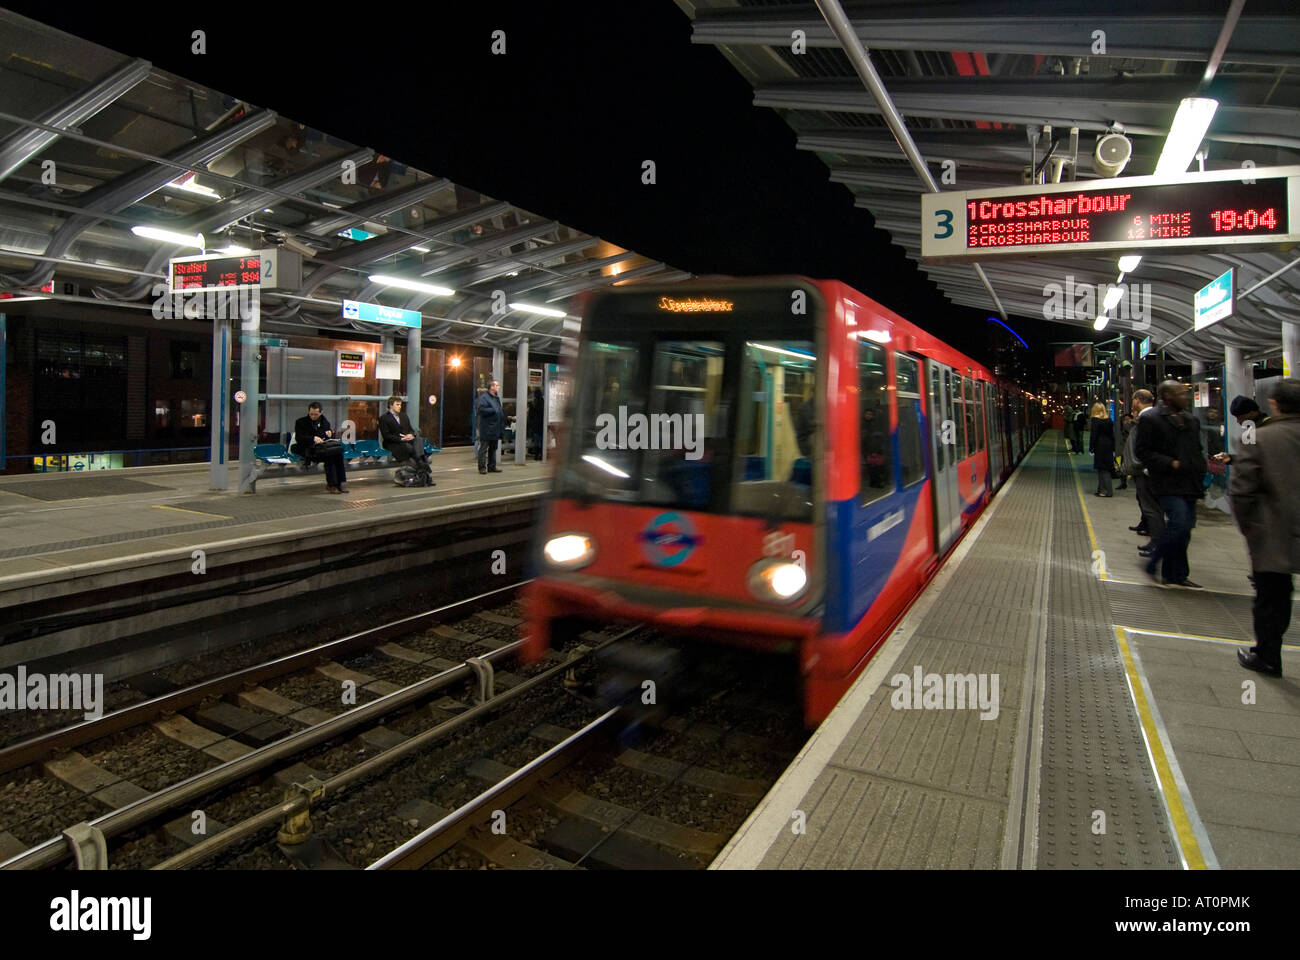 Horizontal wide angle of a Docklands Light Railway train arriving at Poplar station with people waiting on the platform - Stock Image